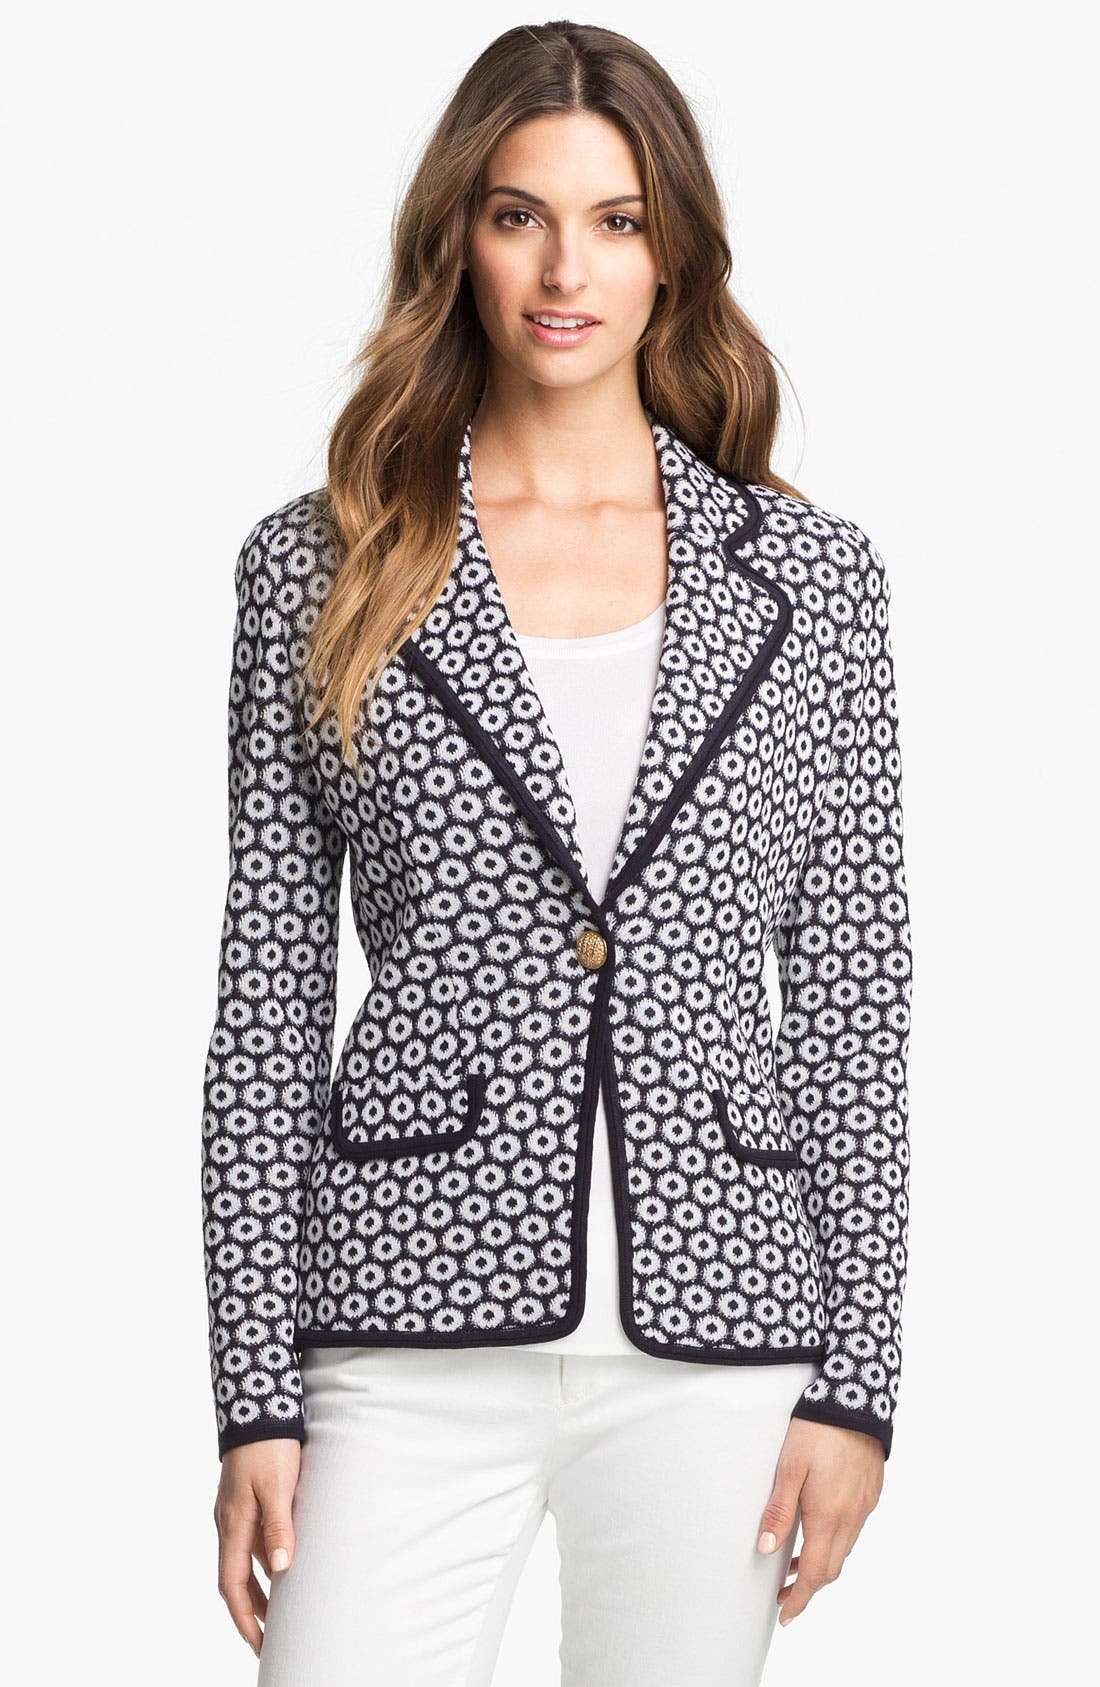 Main Image - Exclusively Misook 'Camille' Print Front Jacket (Petite) (Online Only)